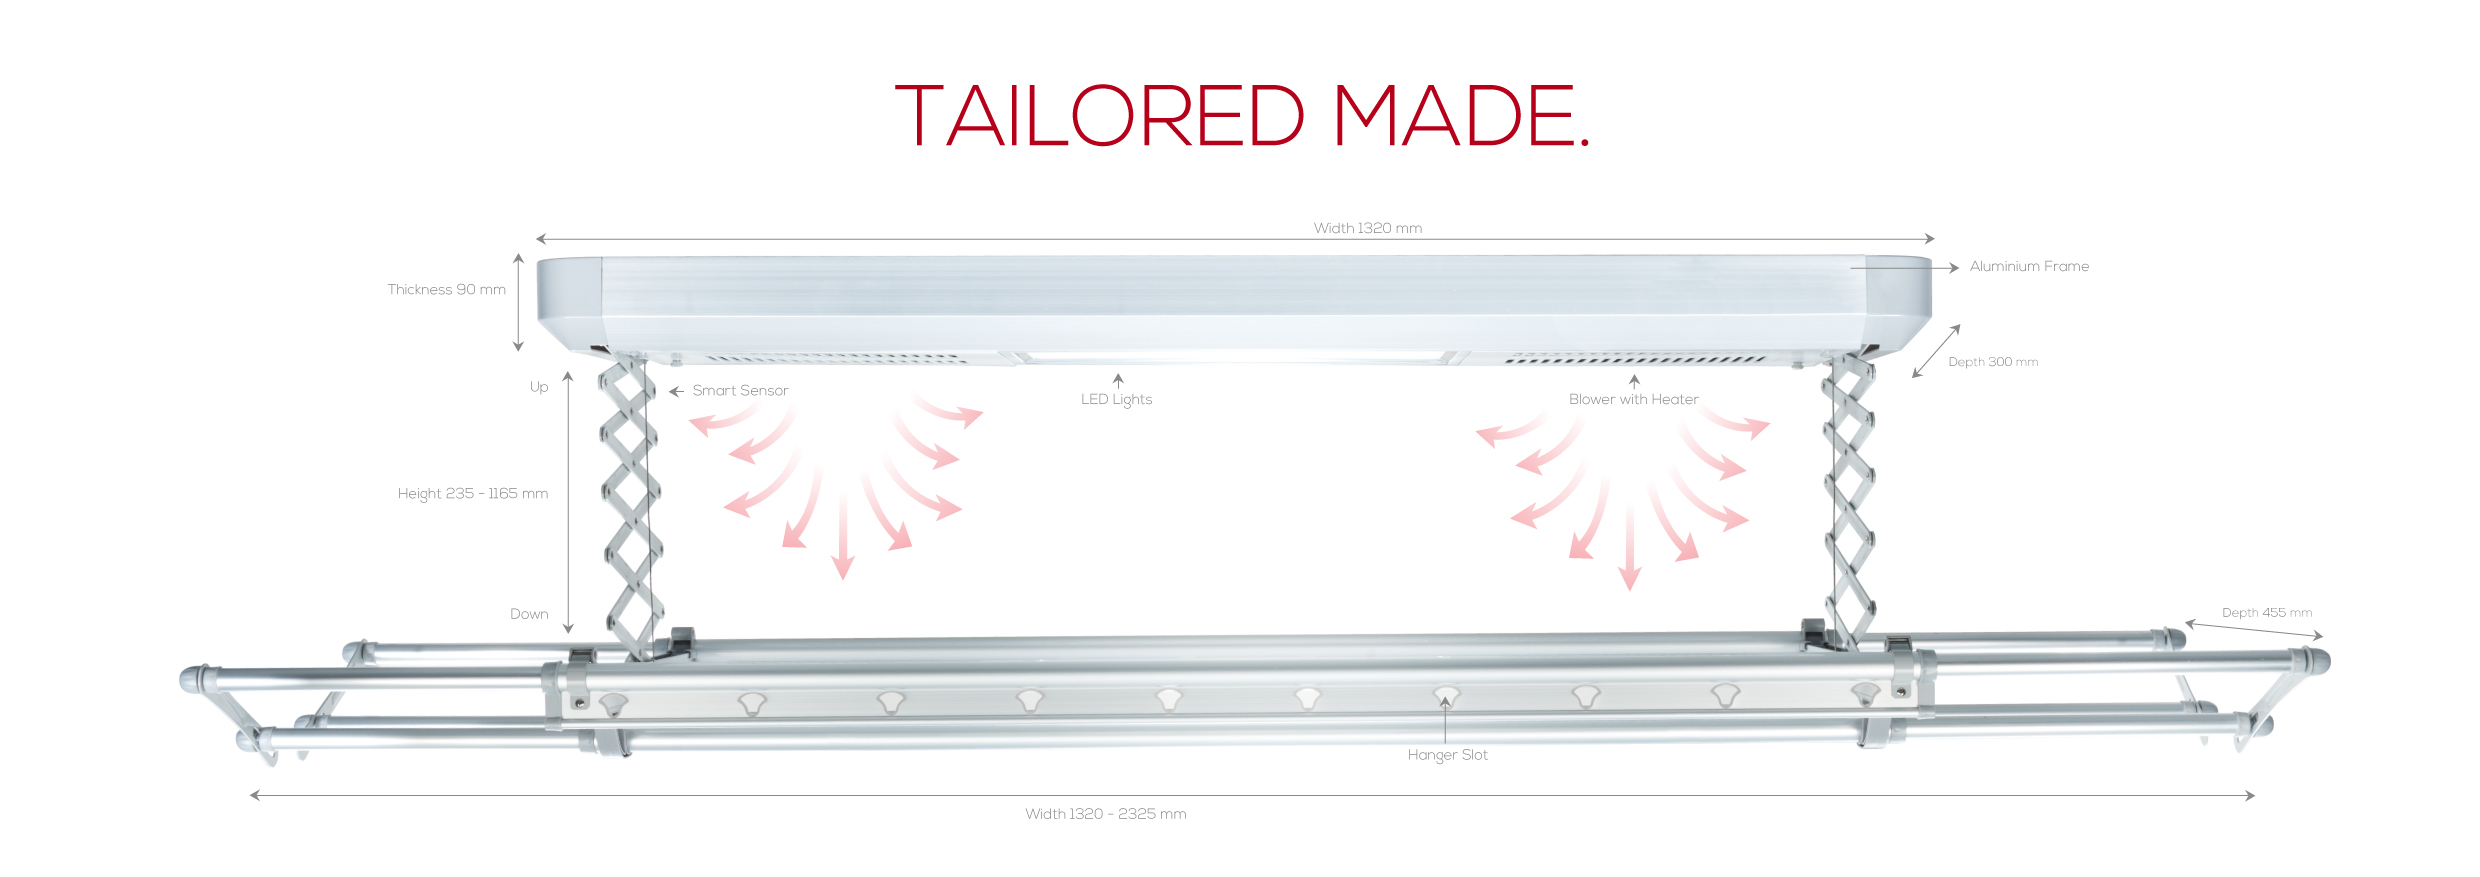 tailored made-08